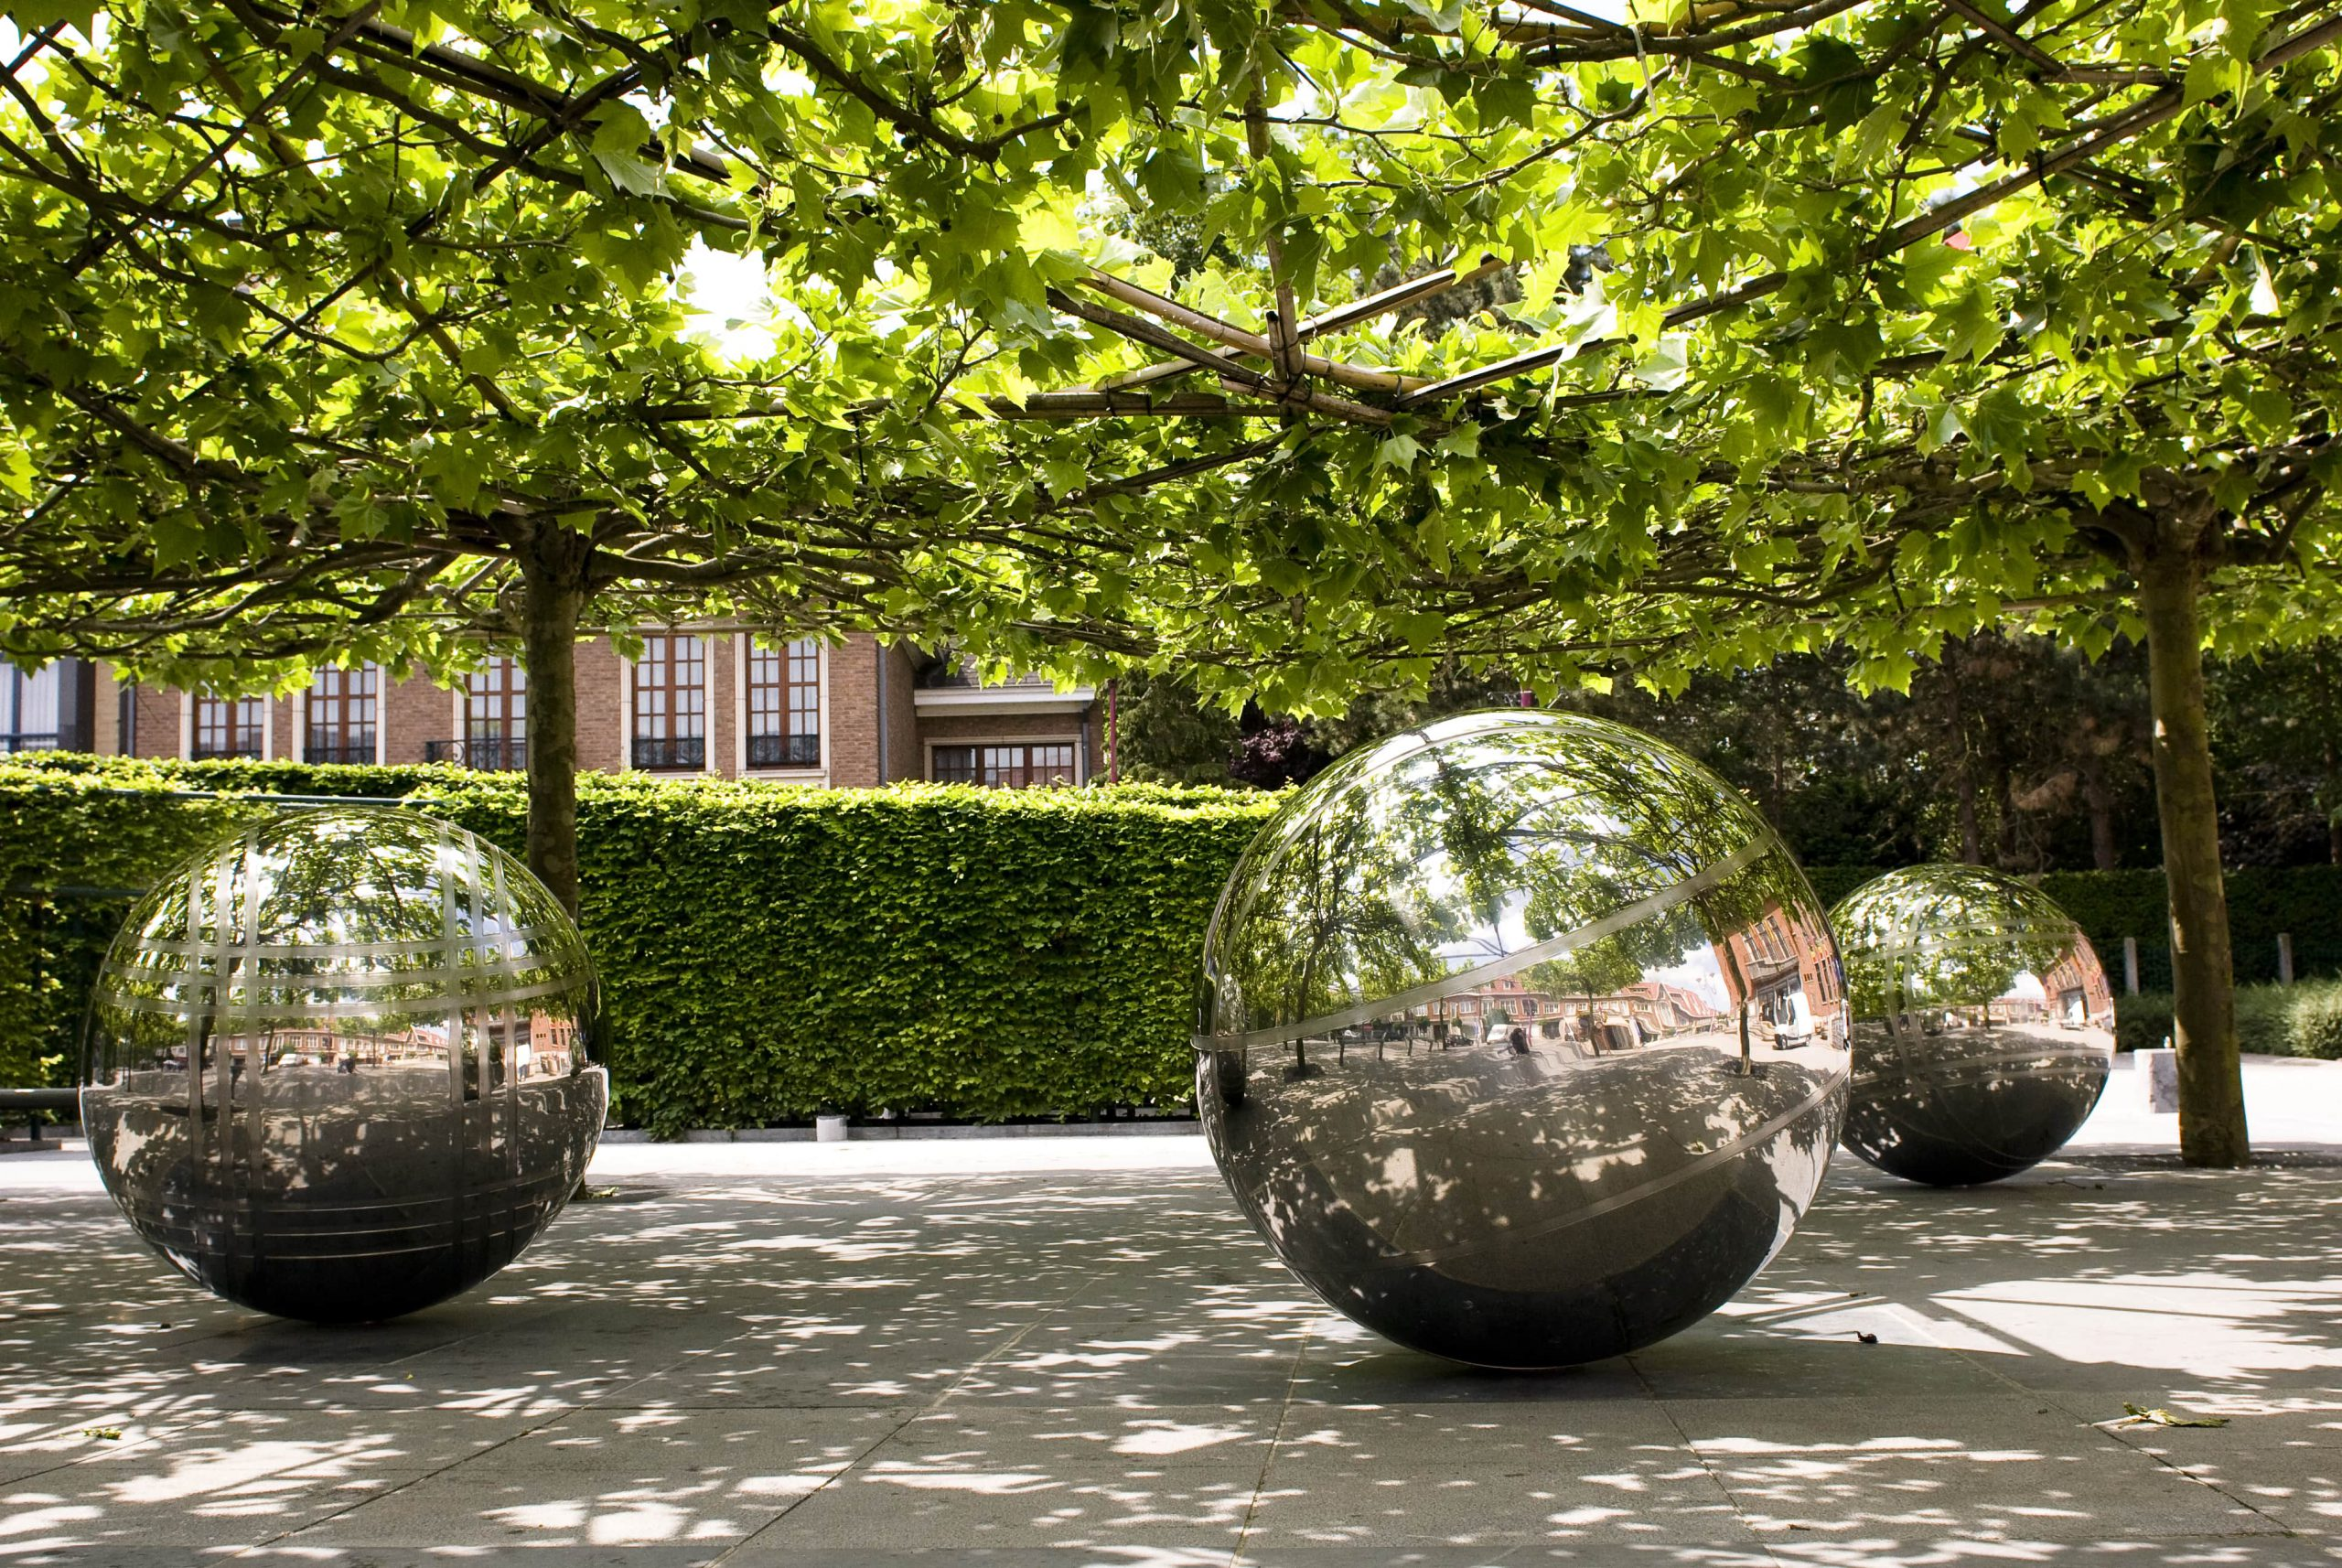 Stainless steel mirror polished Balls